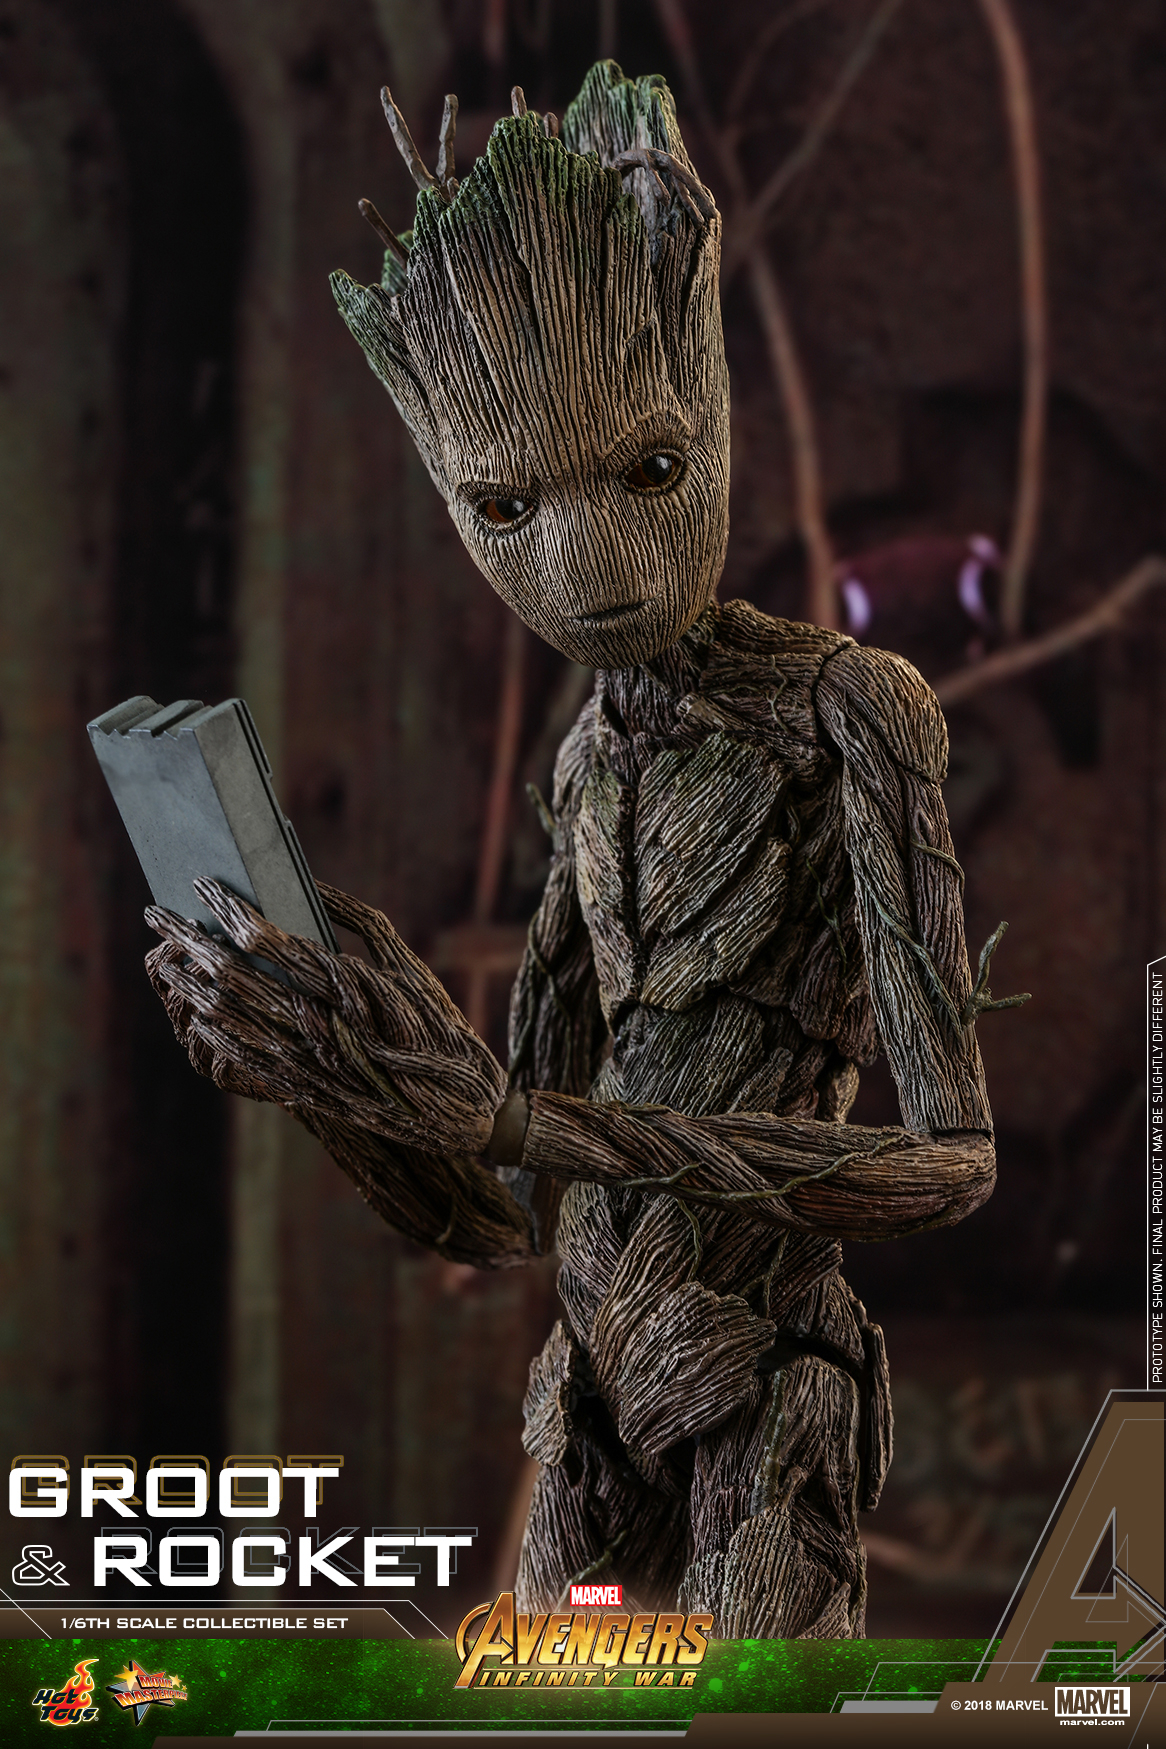 Hot Toys - AIW - Groot & Rocket collectible set_PR11